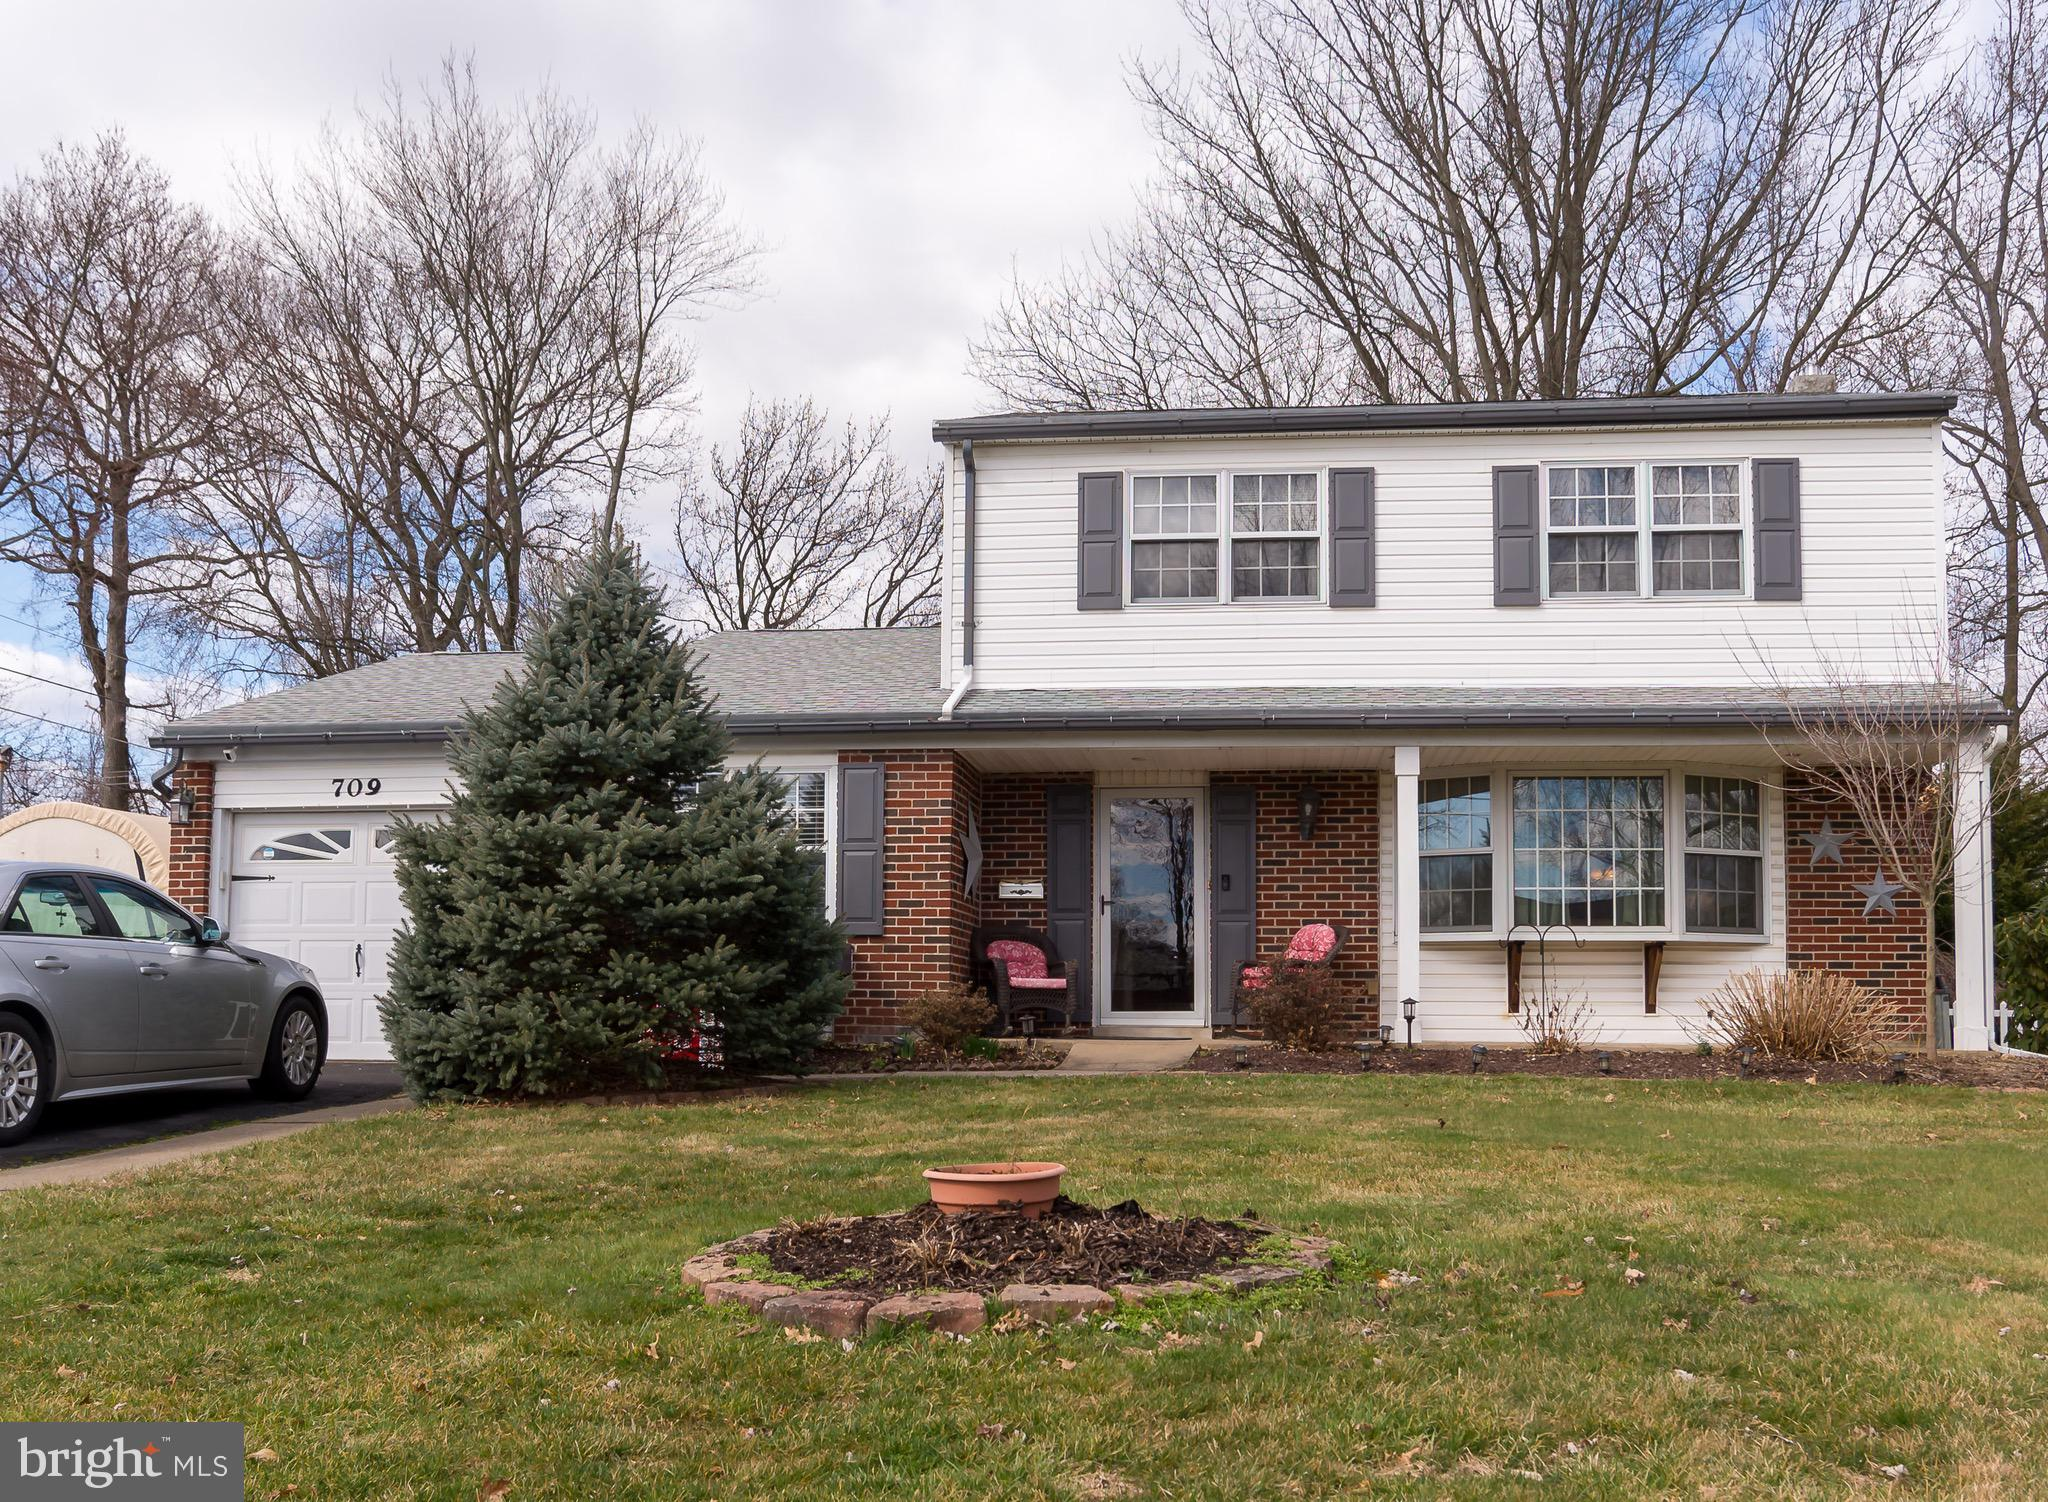 709 S OLDS BOULEVARD, FAIRLESS HILLS, PA 19030